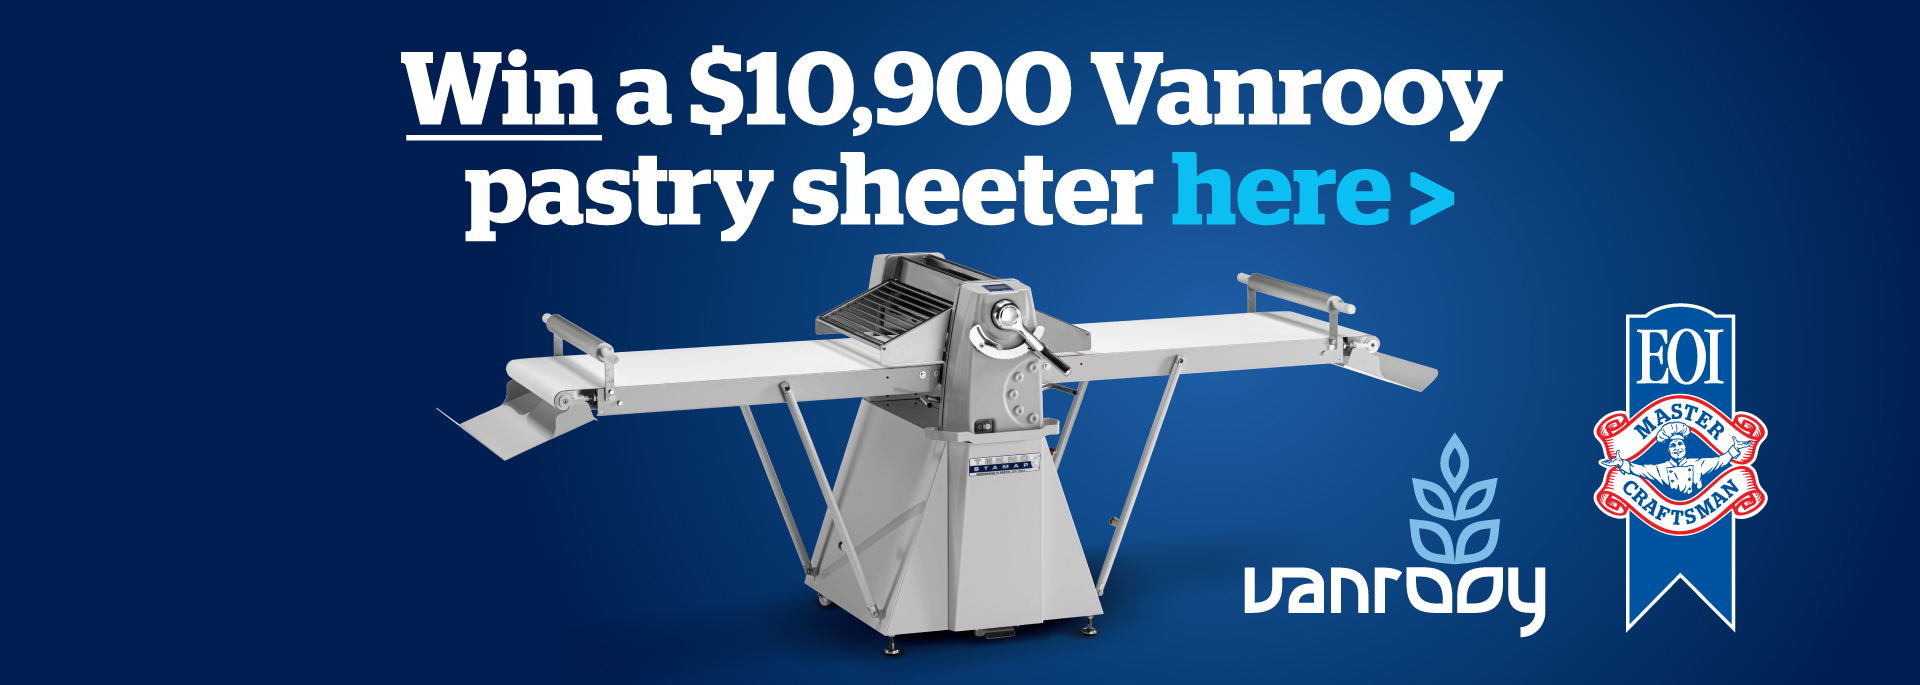 WIN a Vanrooy Pastry Sheeter with EOI